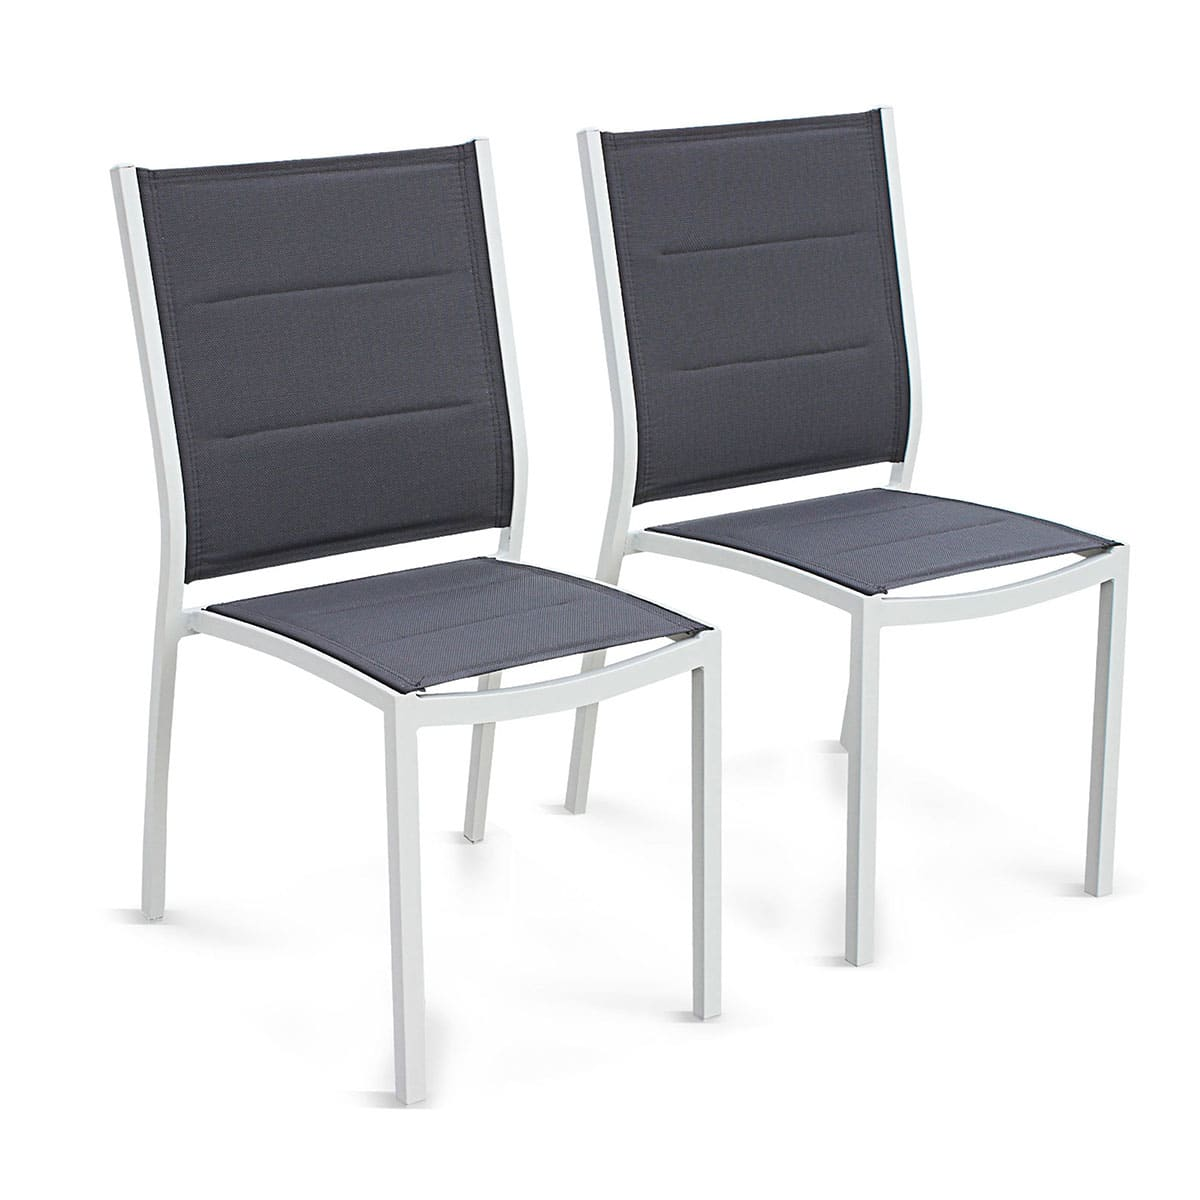 CHICAGO aluminium chairs